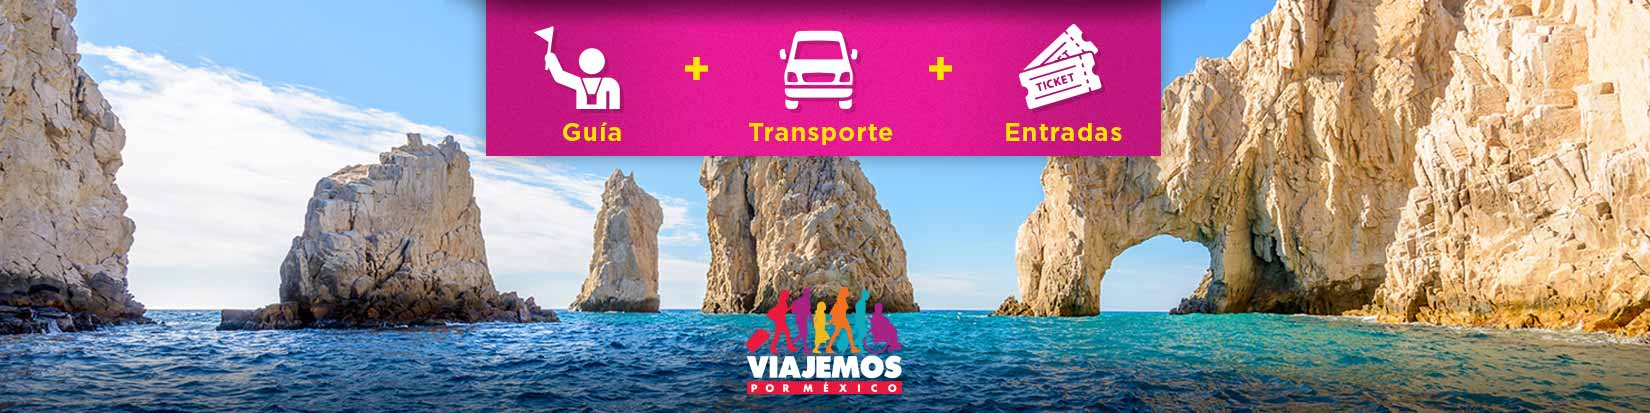 Tours / Excursiones en Baja California de hasta 10 hrs